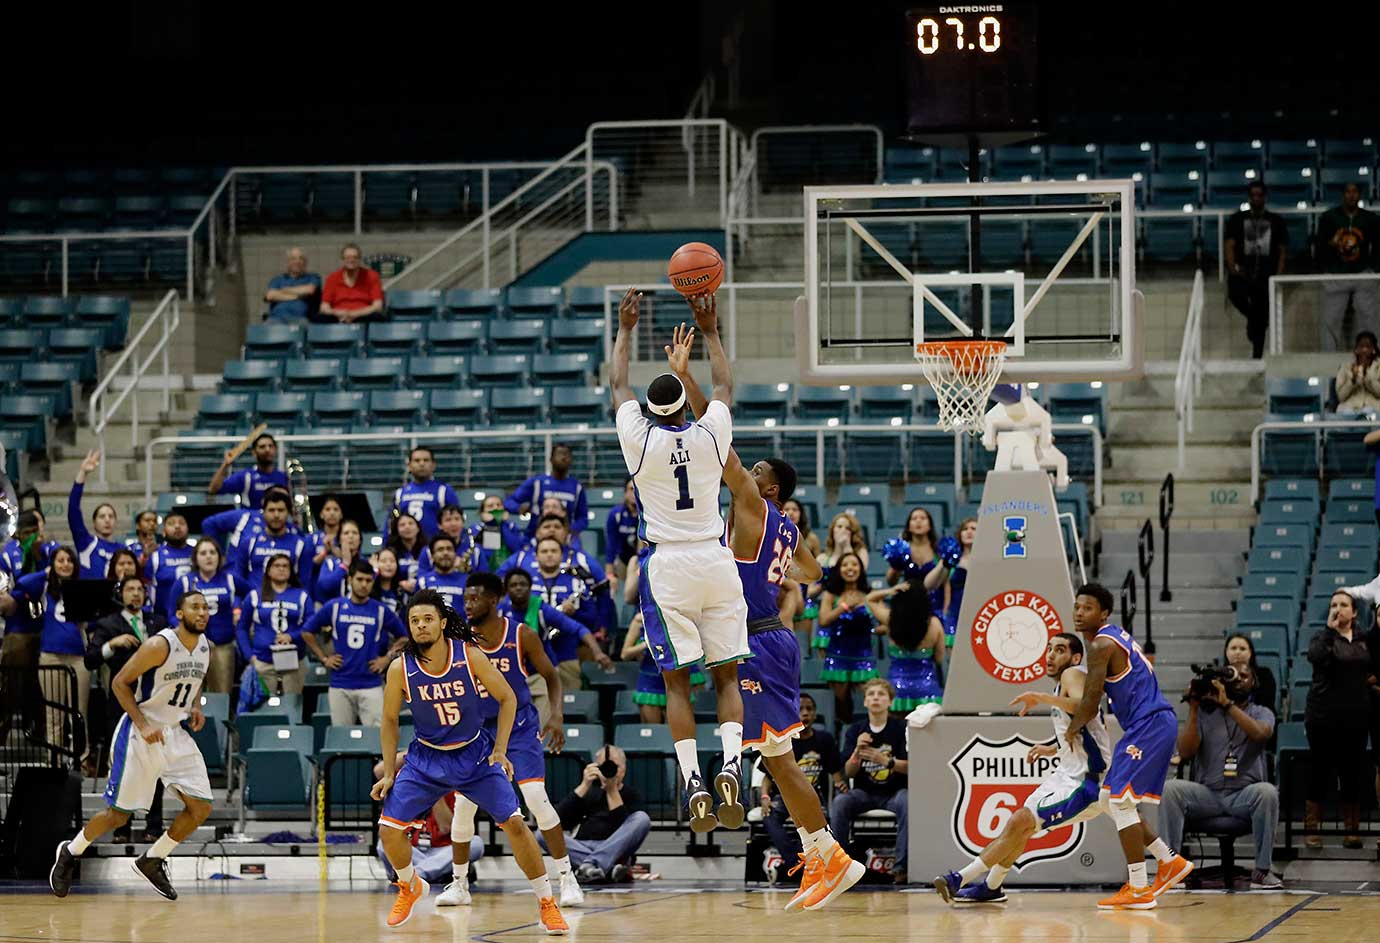 Texas A&M Corpus Christi's Hameed Ali makes a three-pointer in the finals seconds of a 79-76 win over Sam Houston State.